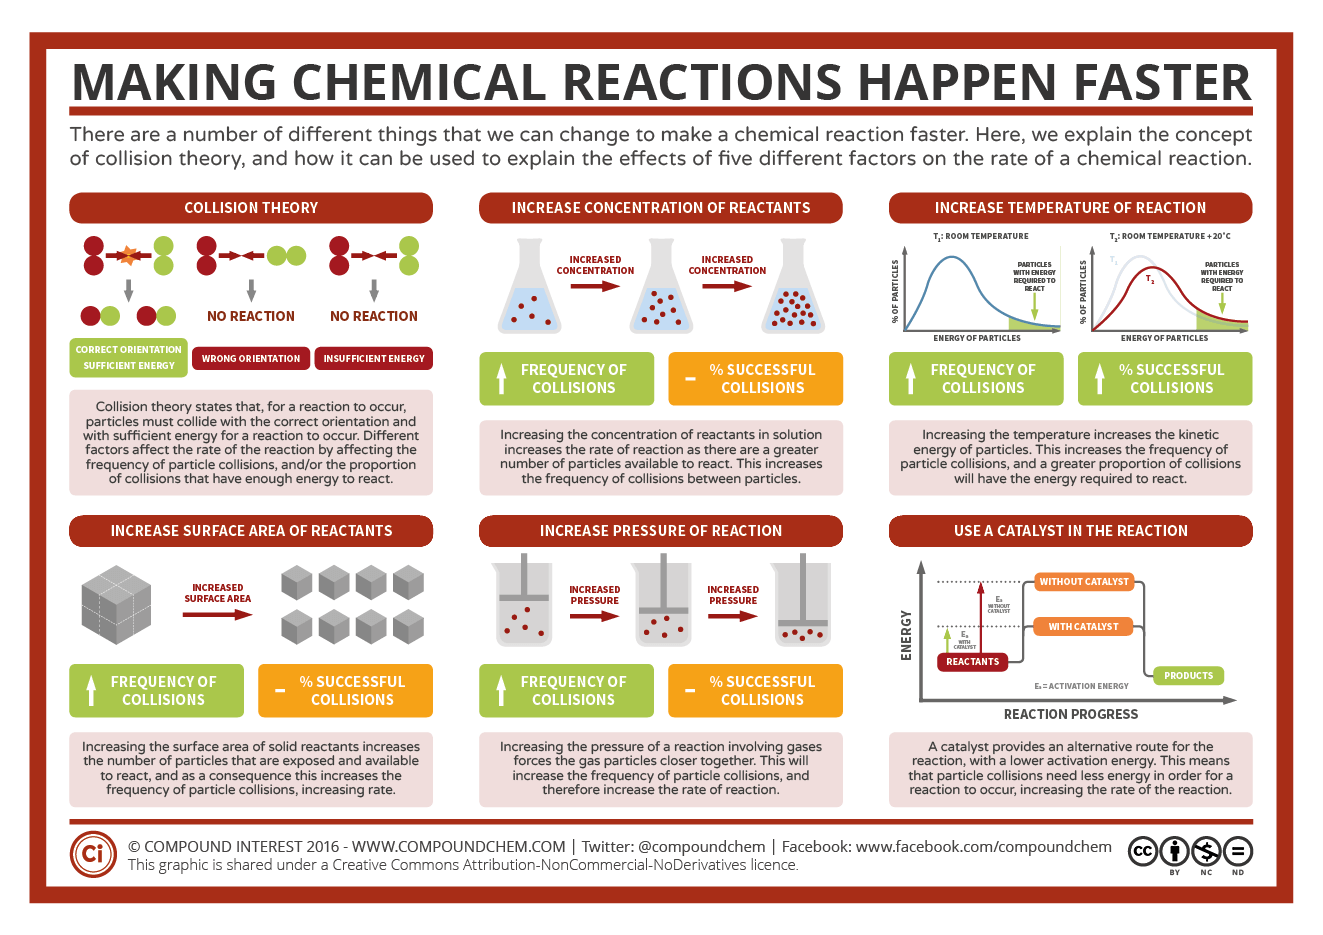 Collision Theory Explains Chemical Reactions